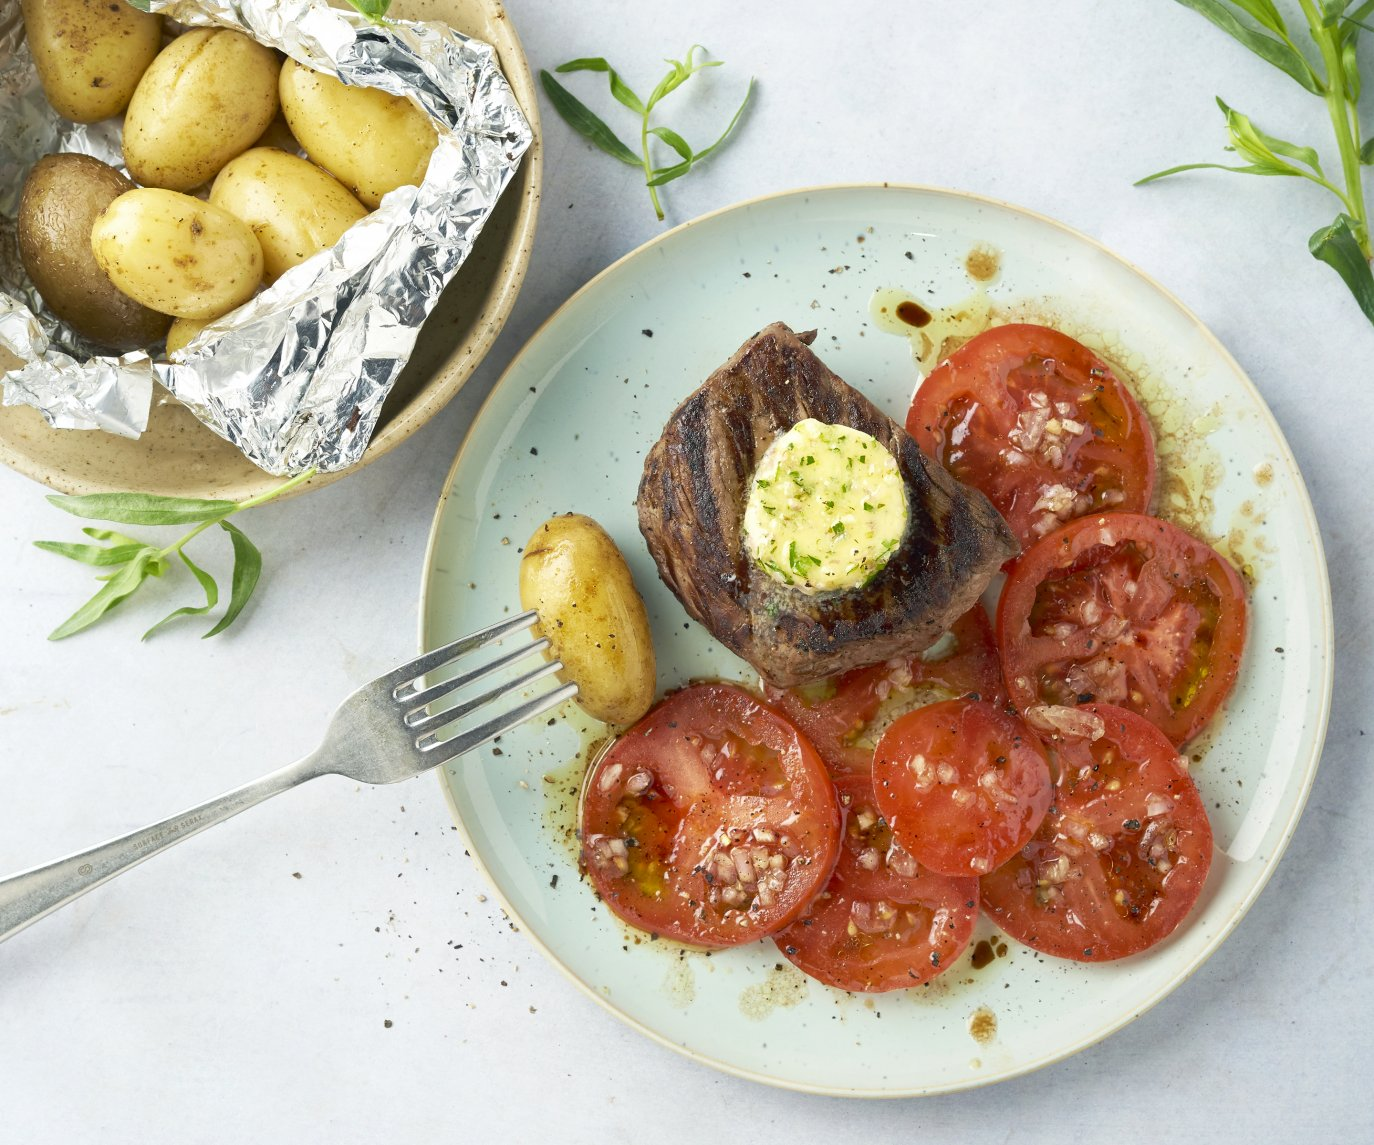 Steak met dragon-lookboter, tomatensalade en krieltjes